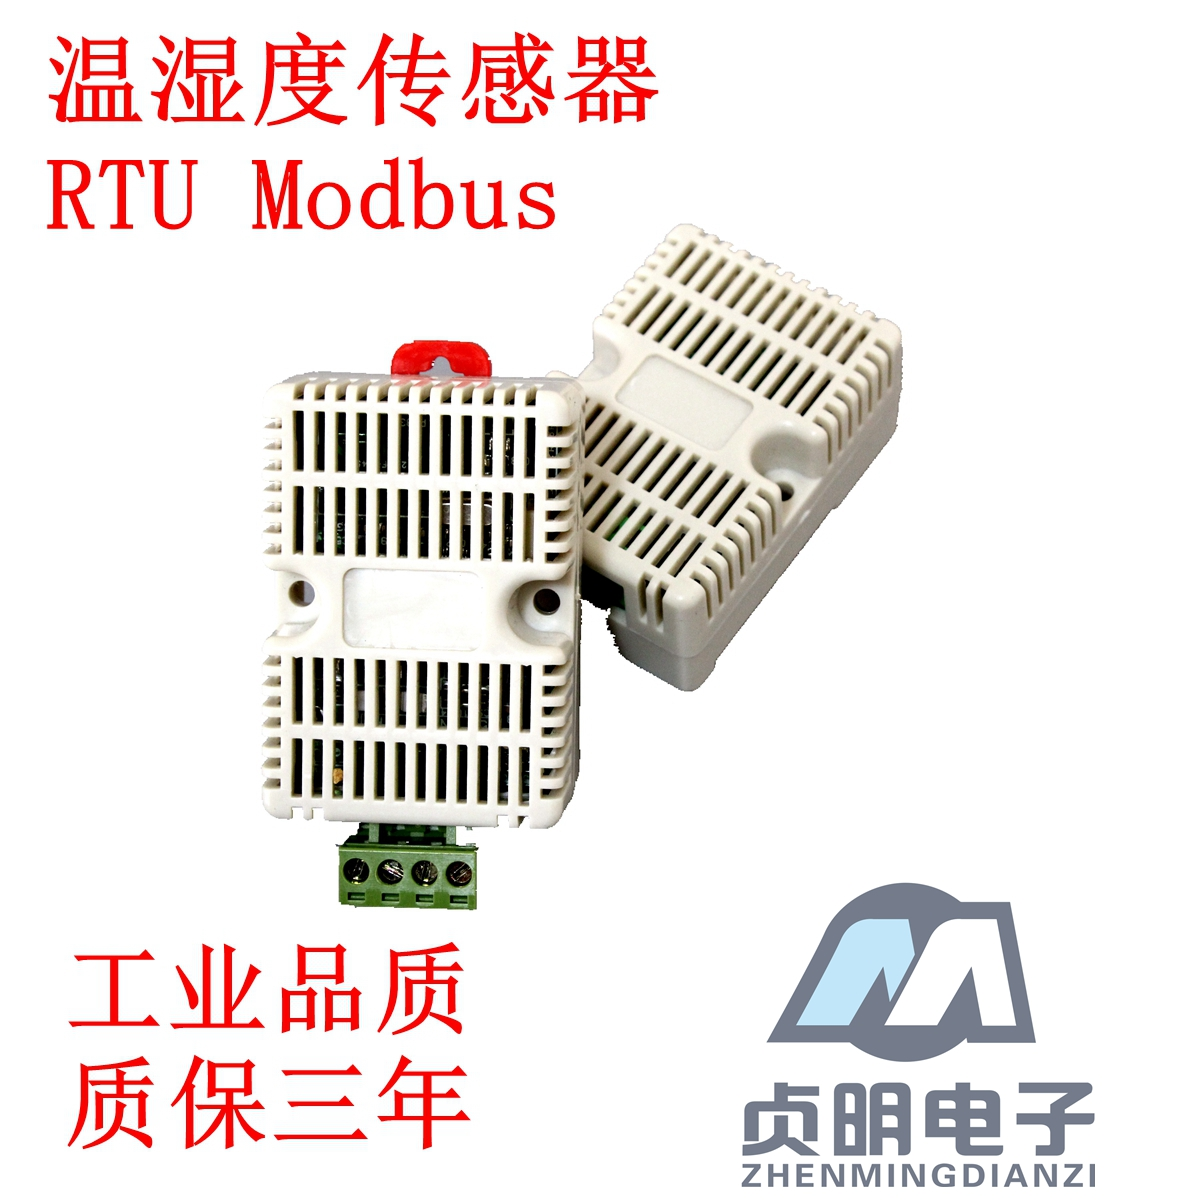 Import temperature and humidity sensor standard Modbus RTU protocol industrial cabinet greenhouse lightning surge temperature and humidity sensor protective shell sht10 protective sleeve sht20 flue cured tobacco high humidity